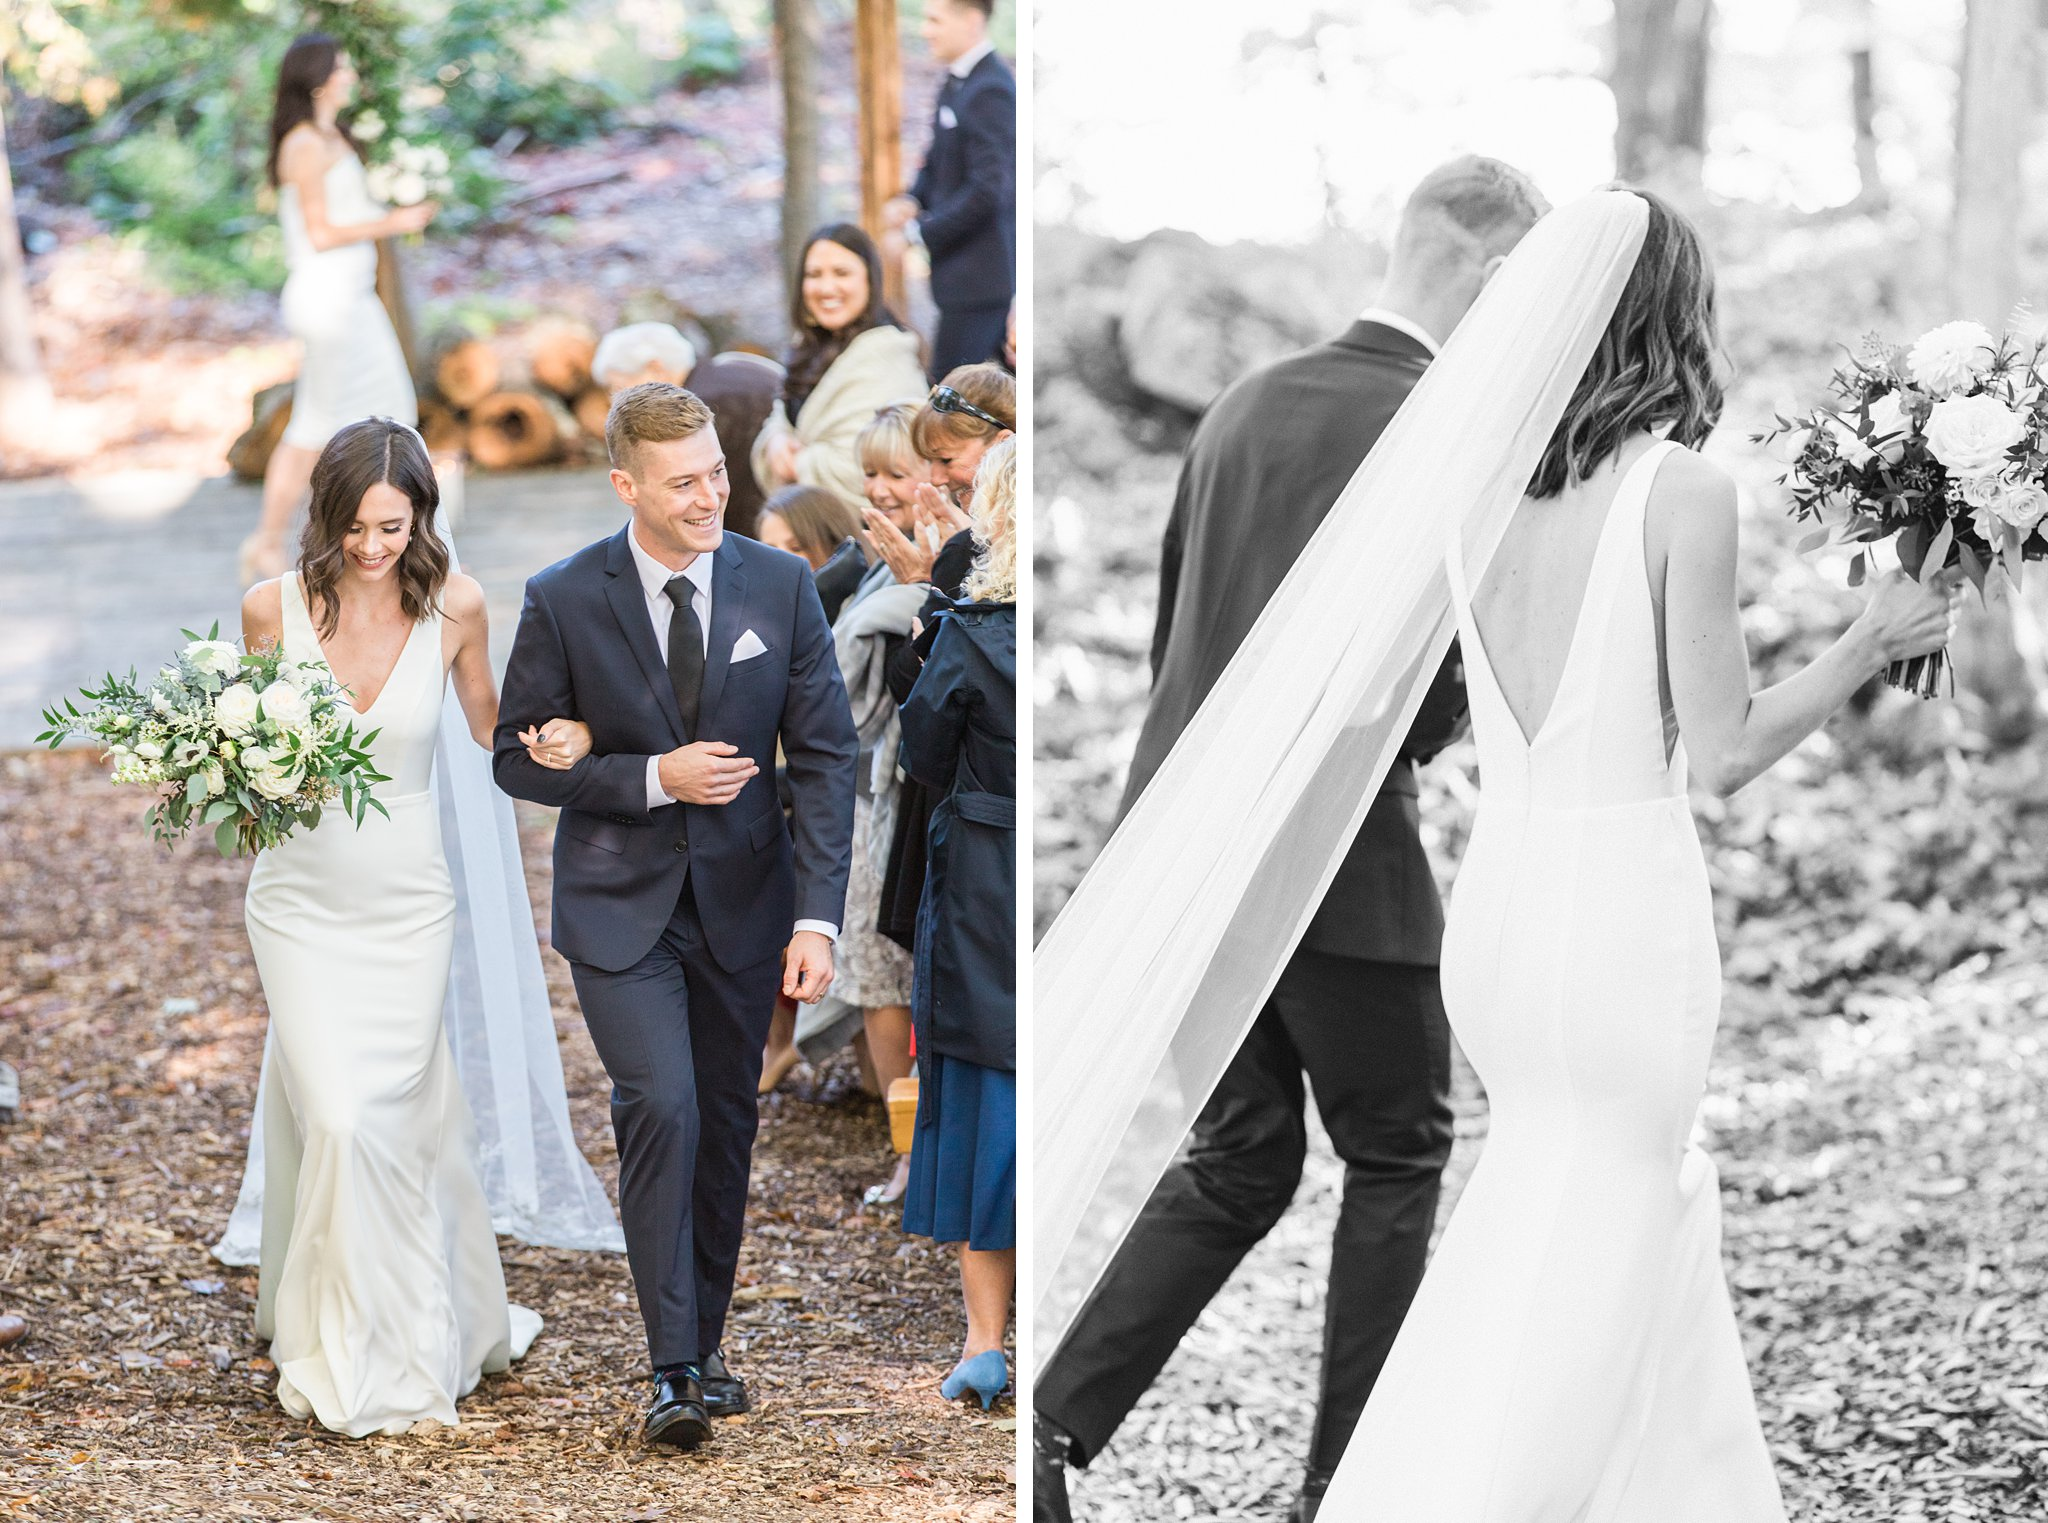 Bride and groom walk down the aisle, Opinicon Wedding Photos by Amy Pinder Photography